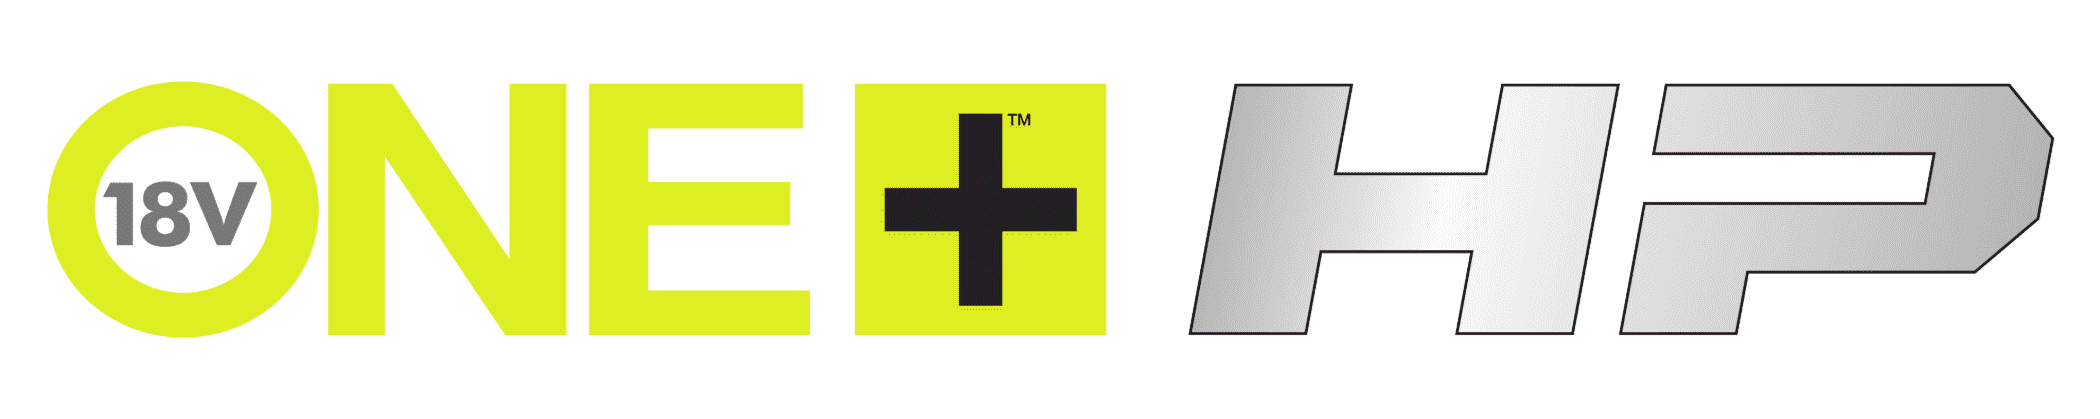 Parallel, Rectangle, Cross, Symbol, Font, Line, Text, Yellow